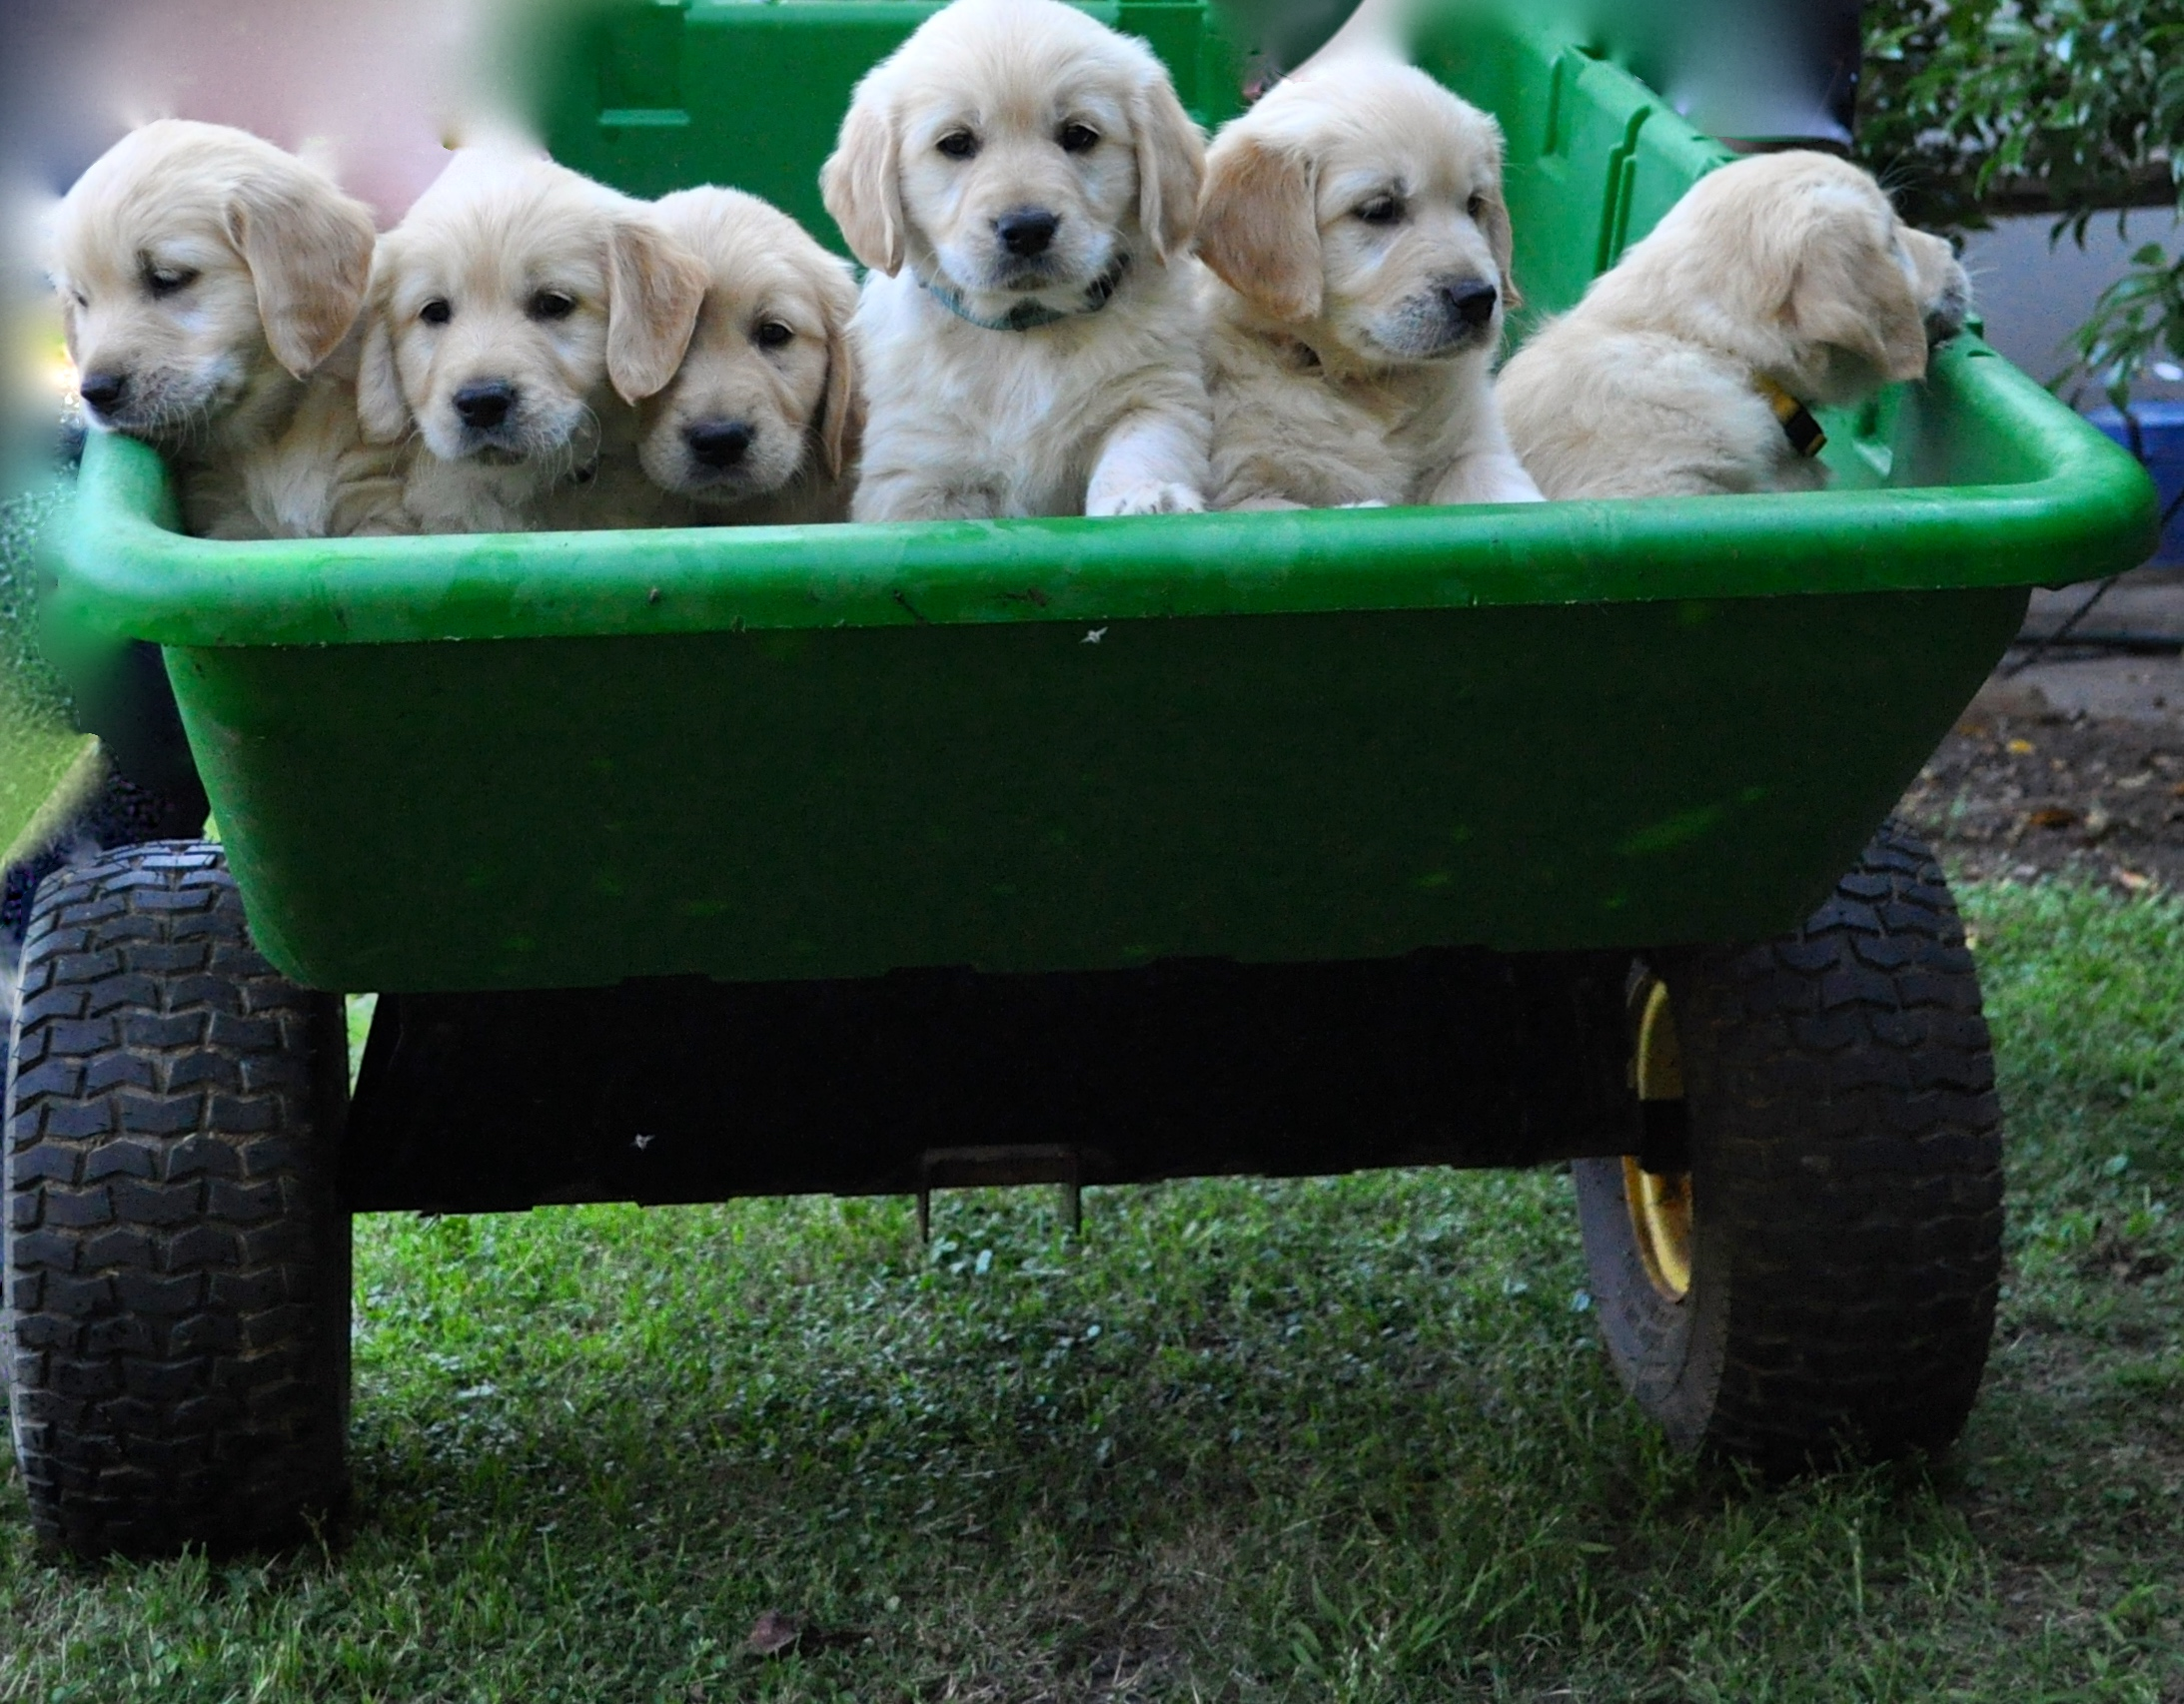 A bucket load of puppies!